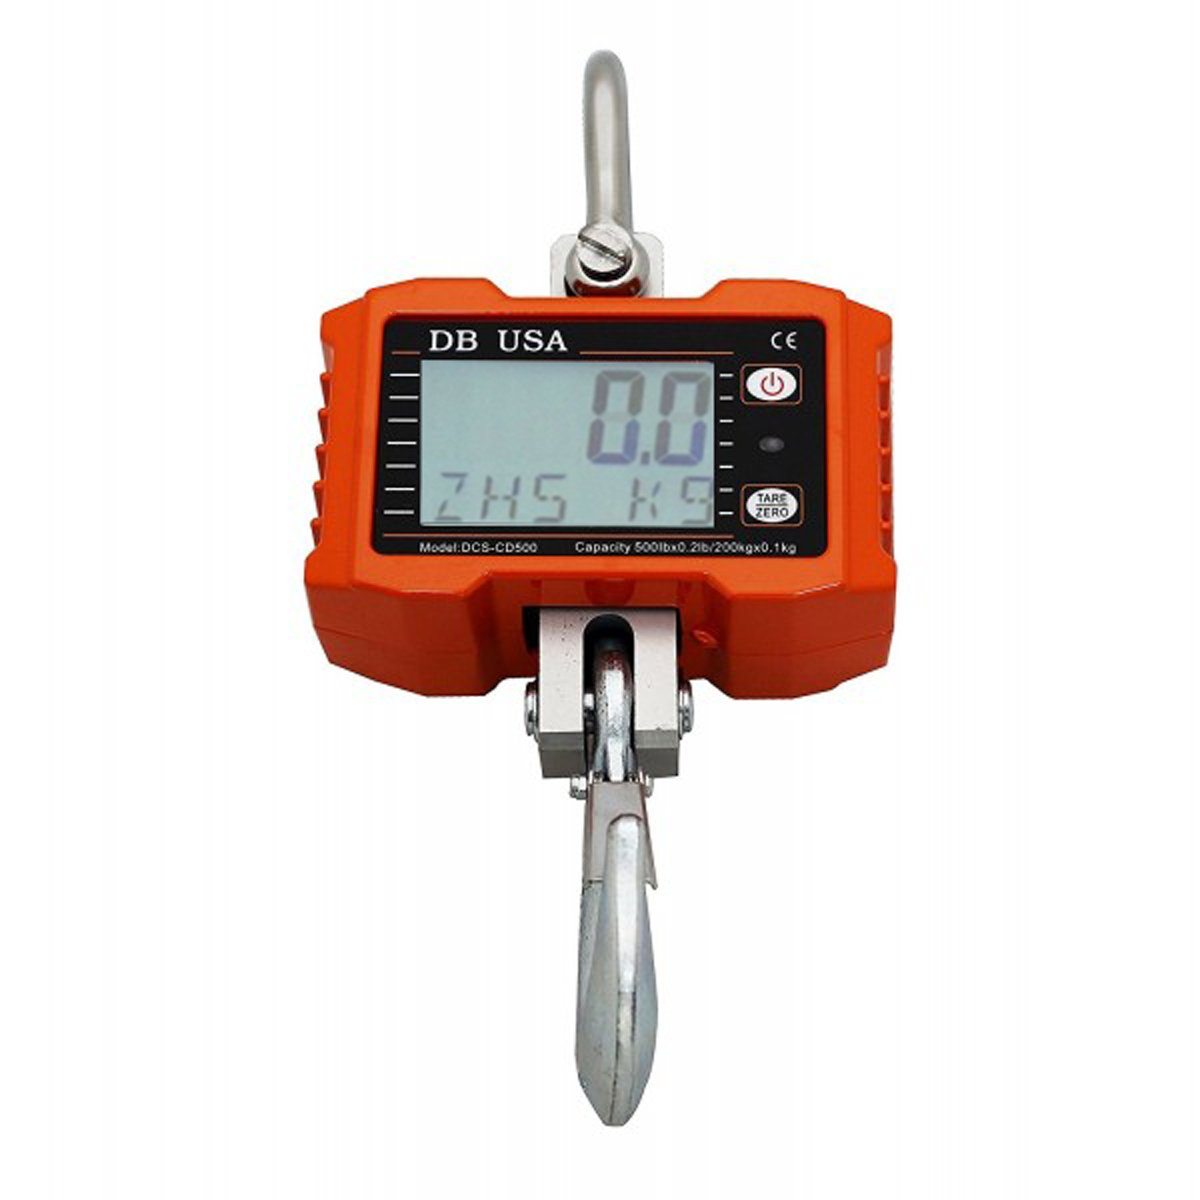 LCD Display with Backlight DCS-CD 2000lb // 1000 kg Precision Compact Hanging Scale DB USA Digital Crane Scale